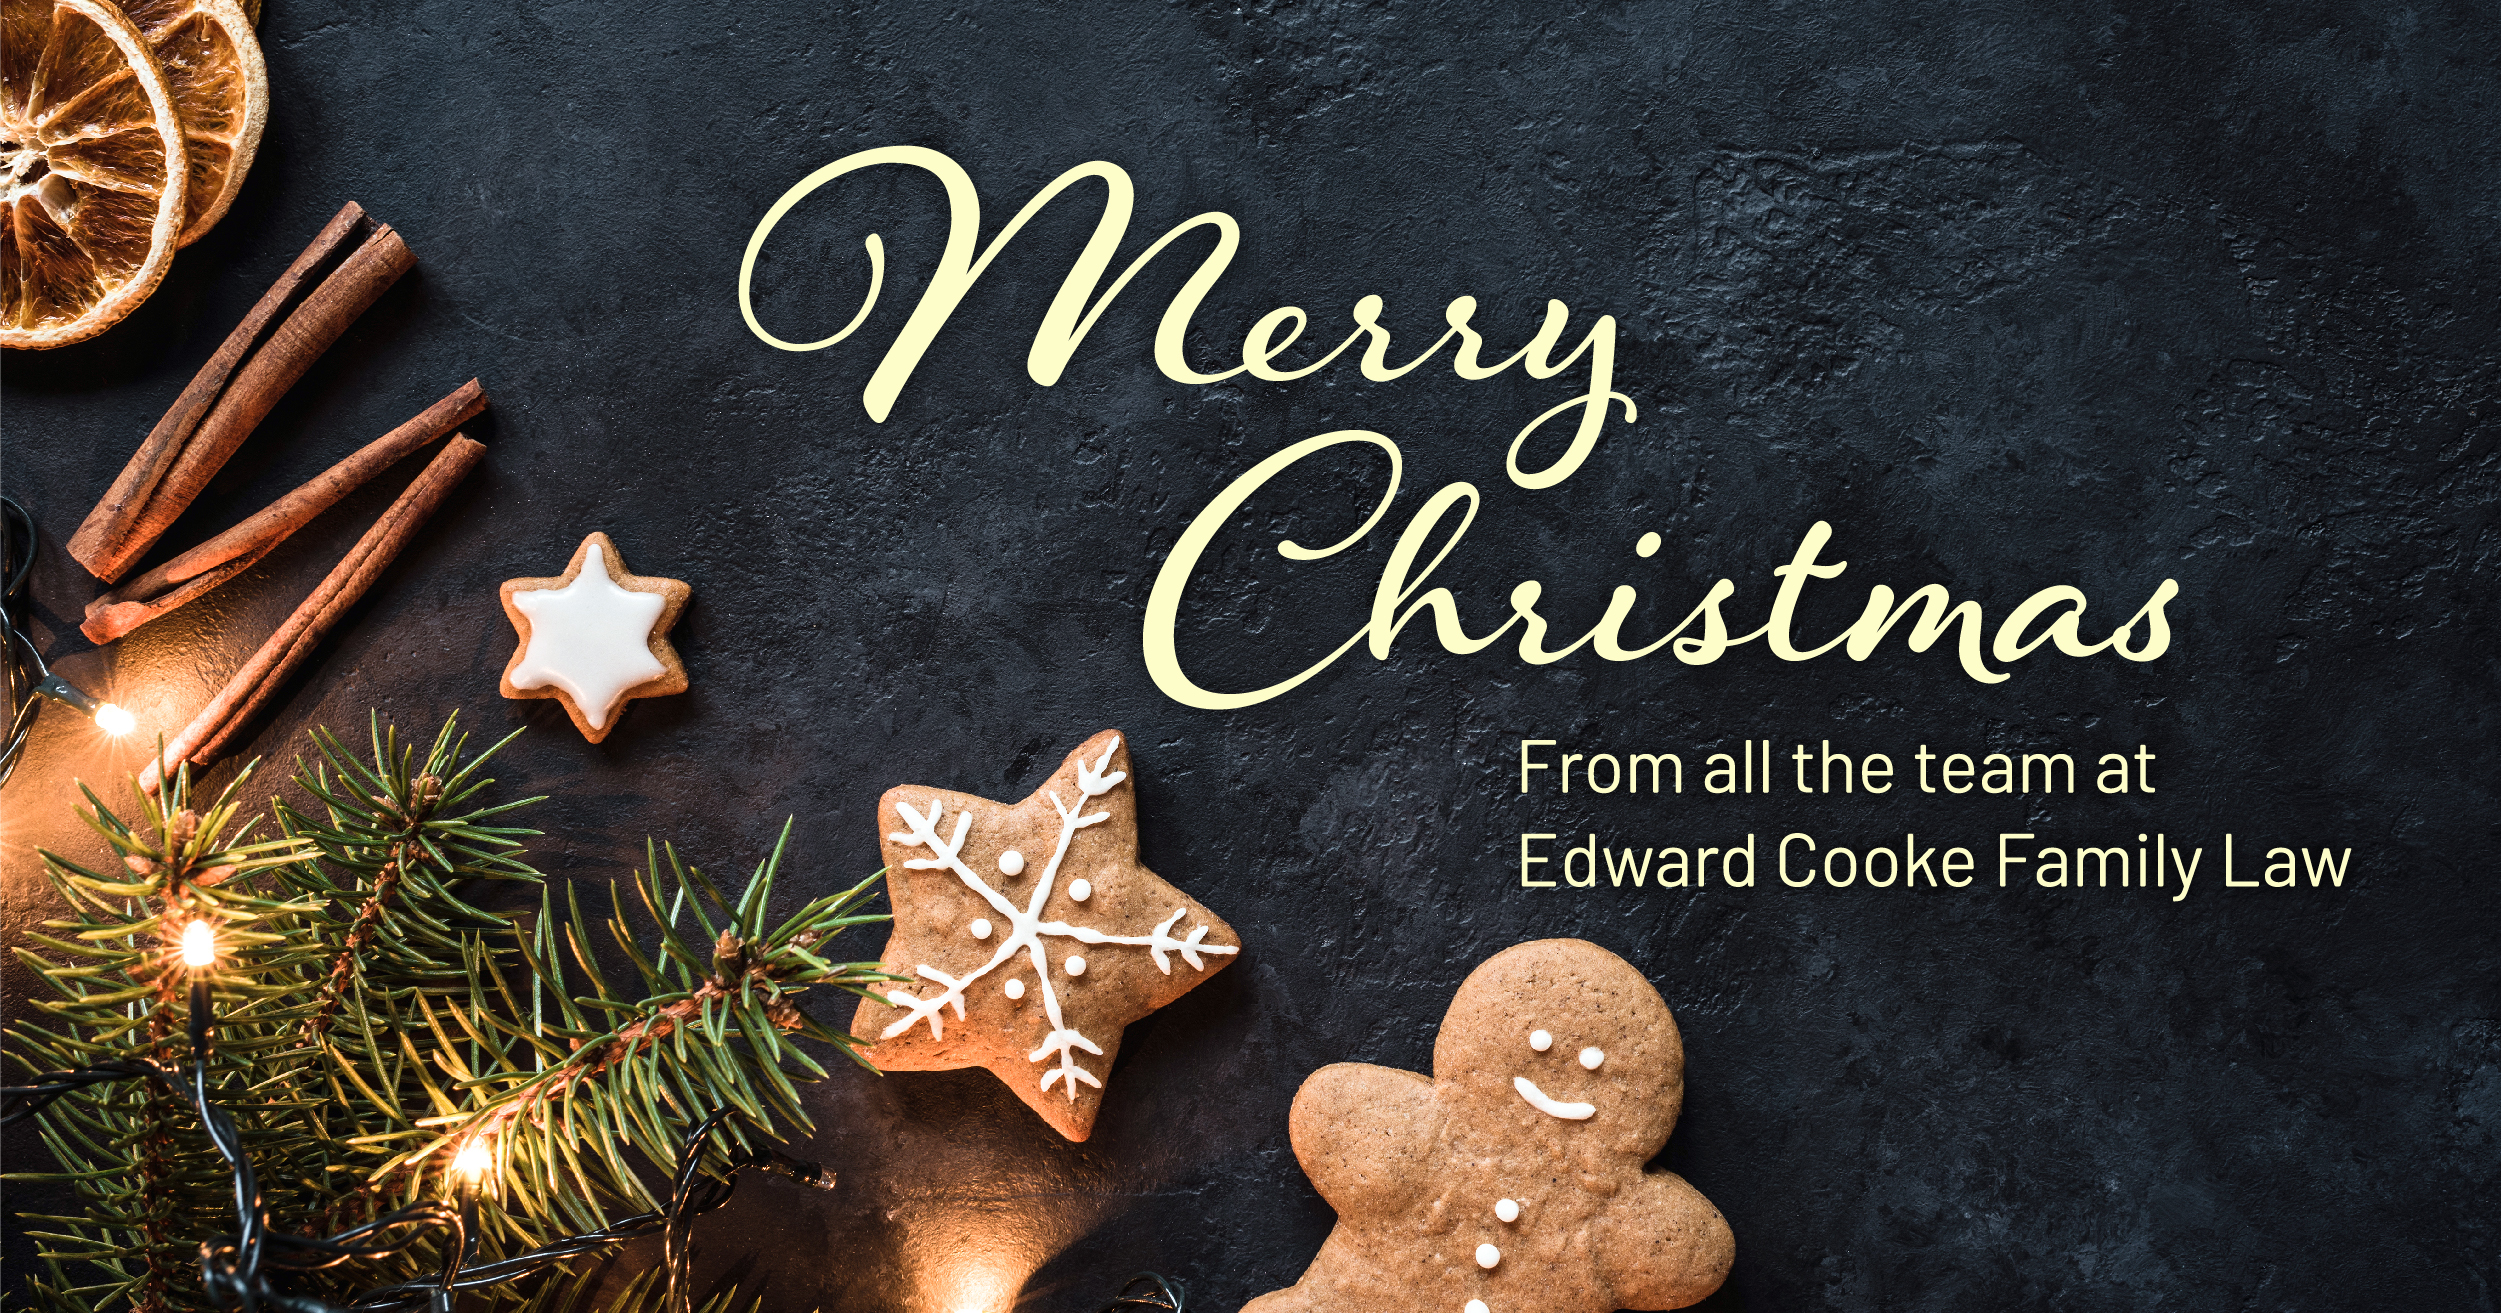 Merry Christmas from Edward Cooke Family Law